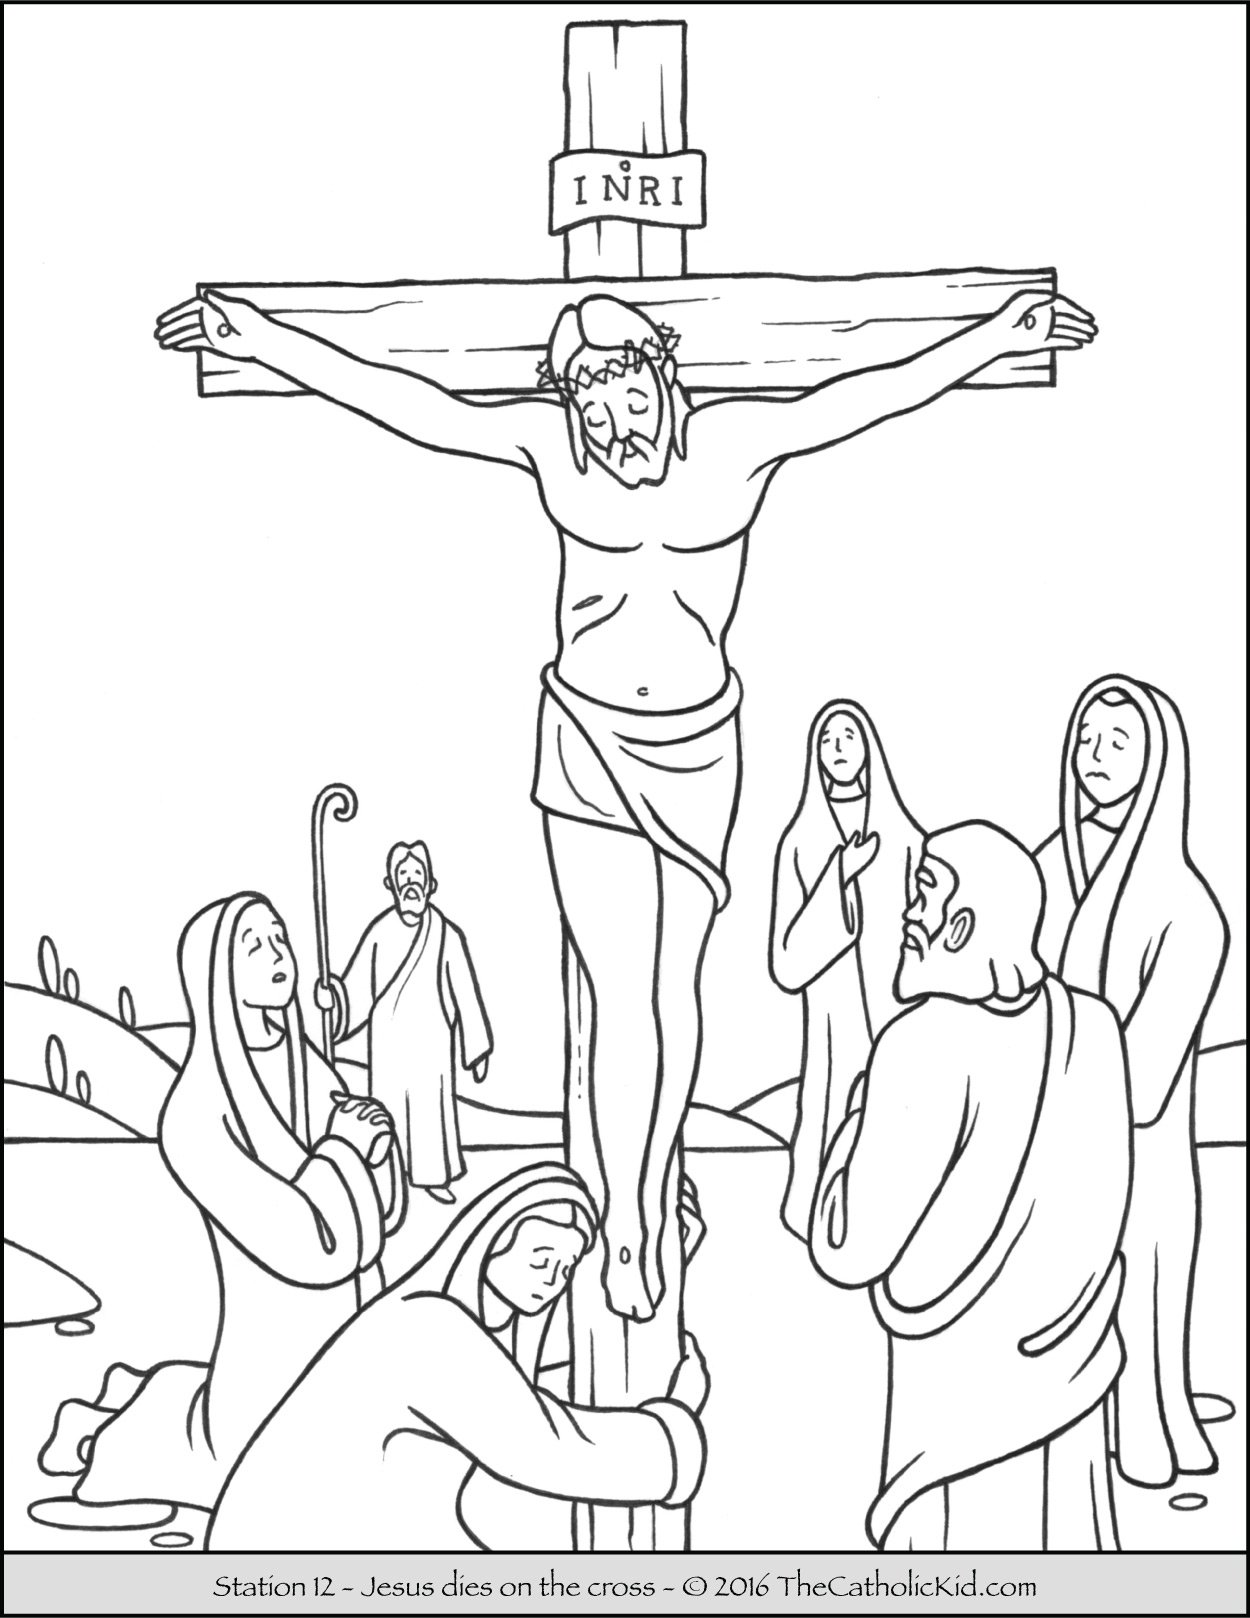 Stations Of The Cross Coloring Pages Glamorous Stations Of The Cross Coloring Pages  The Catholic Kid 2017